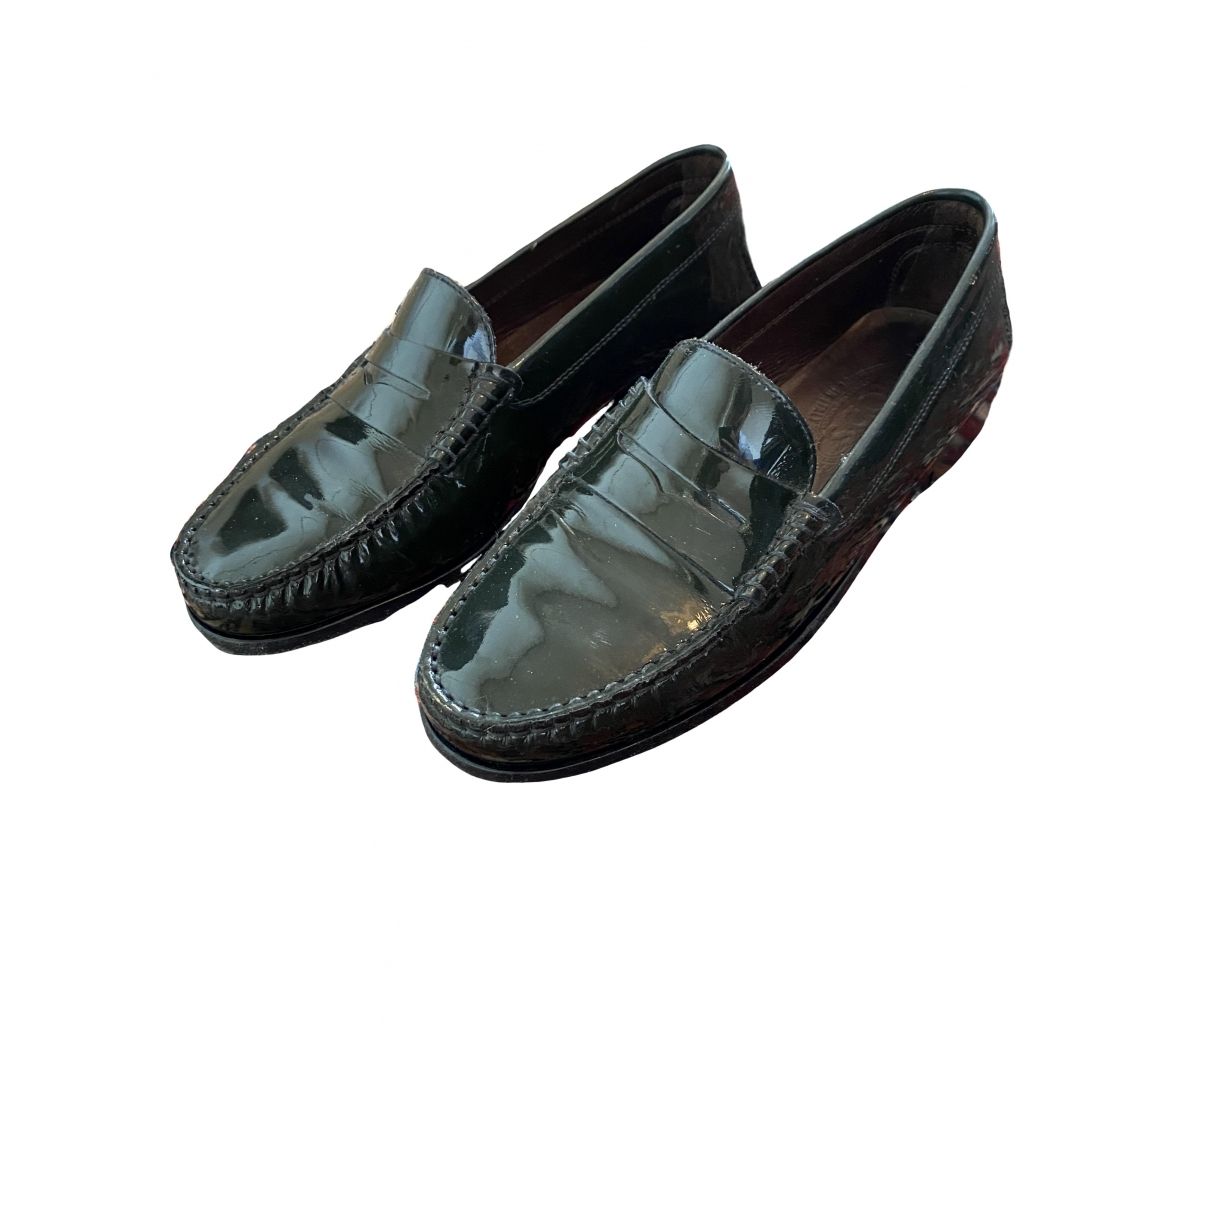 Tod's \N Green Patent leather Flats for Women 36 EU